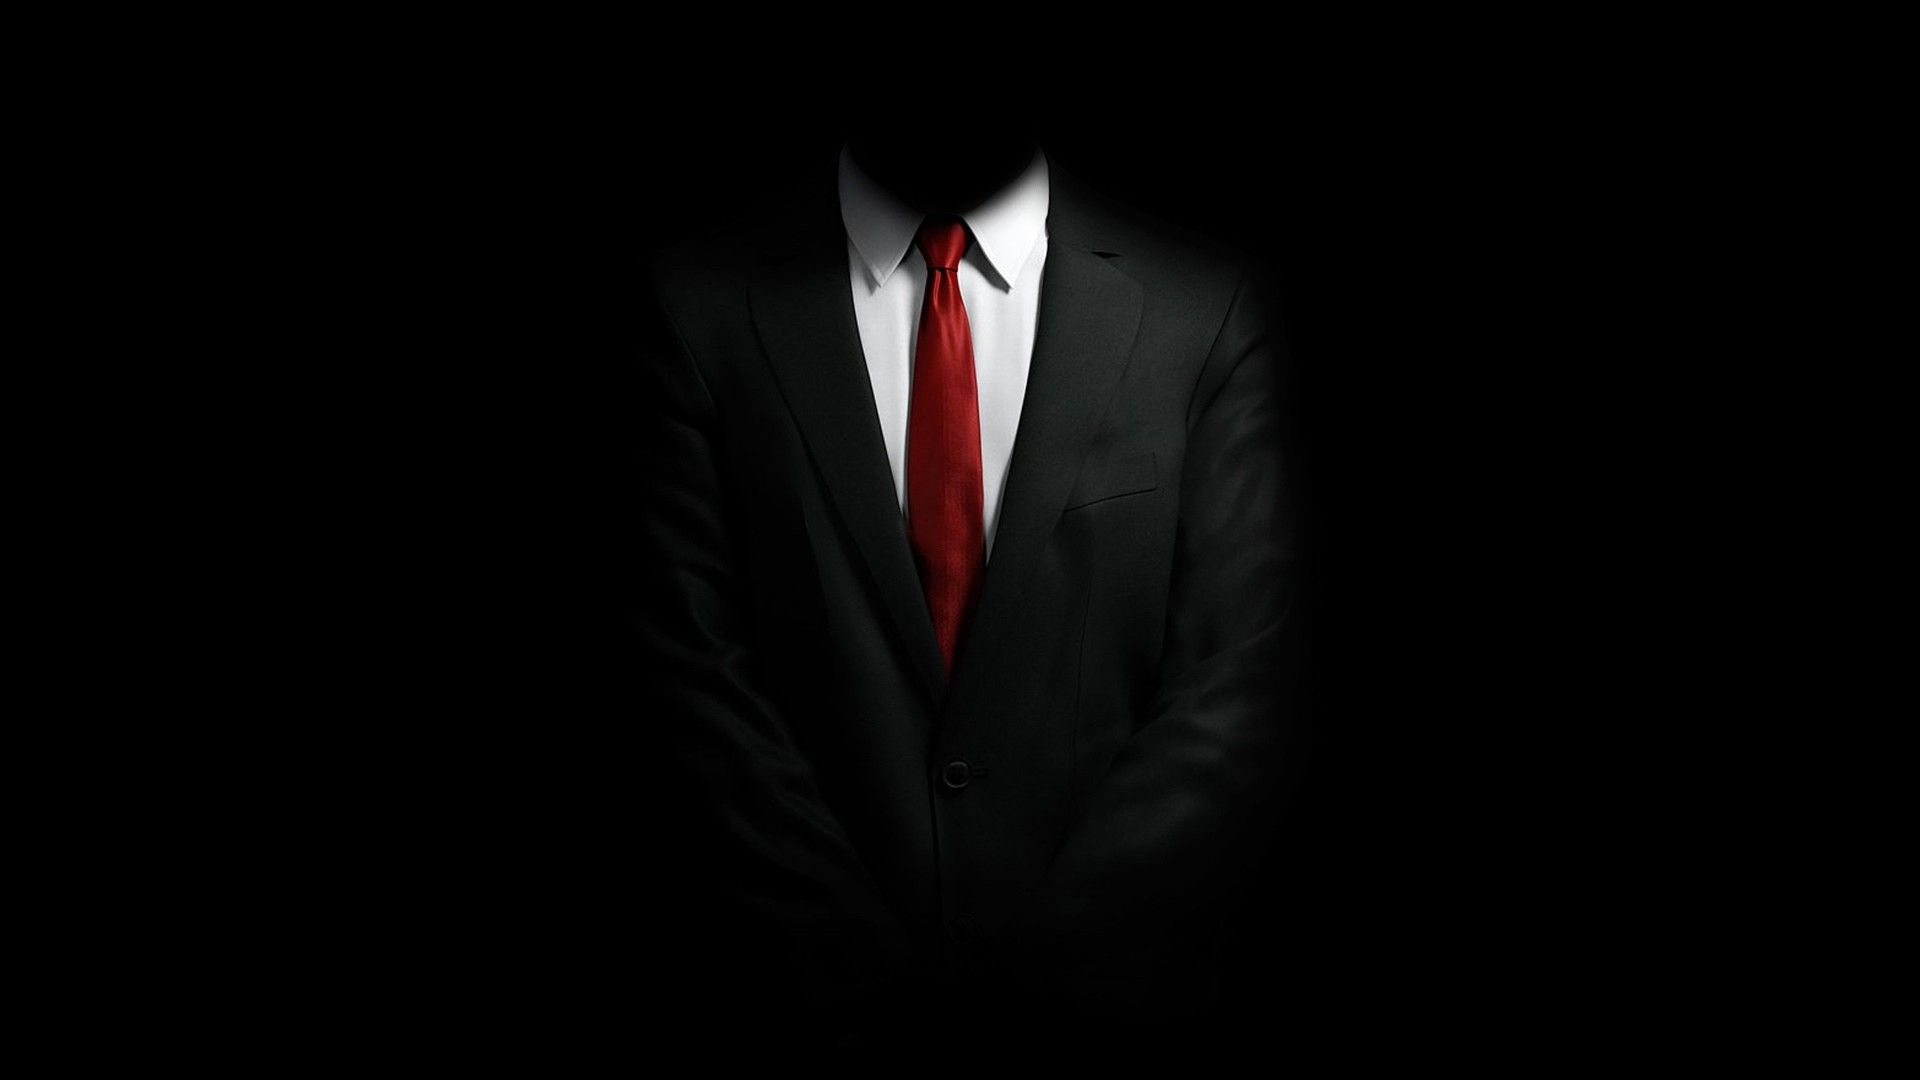 Hitman Suit Wallpapers Top Free Hitman Suit Backgrounds Wallpaperaccess